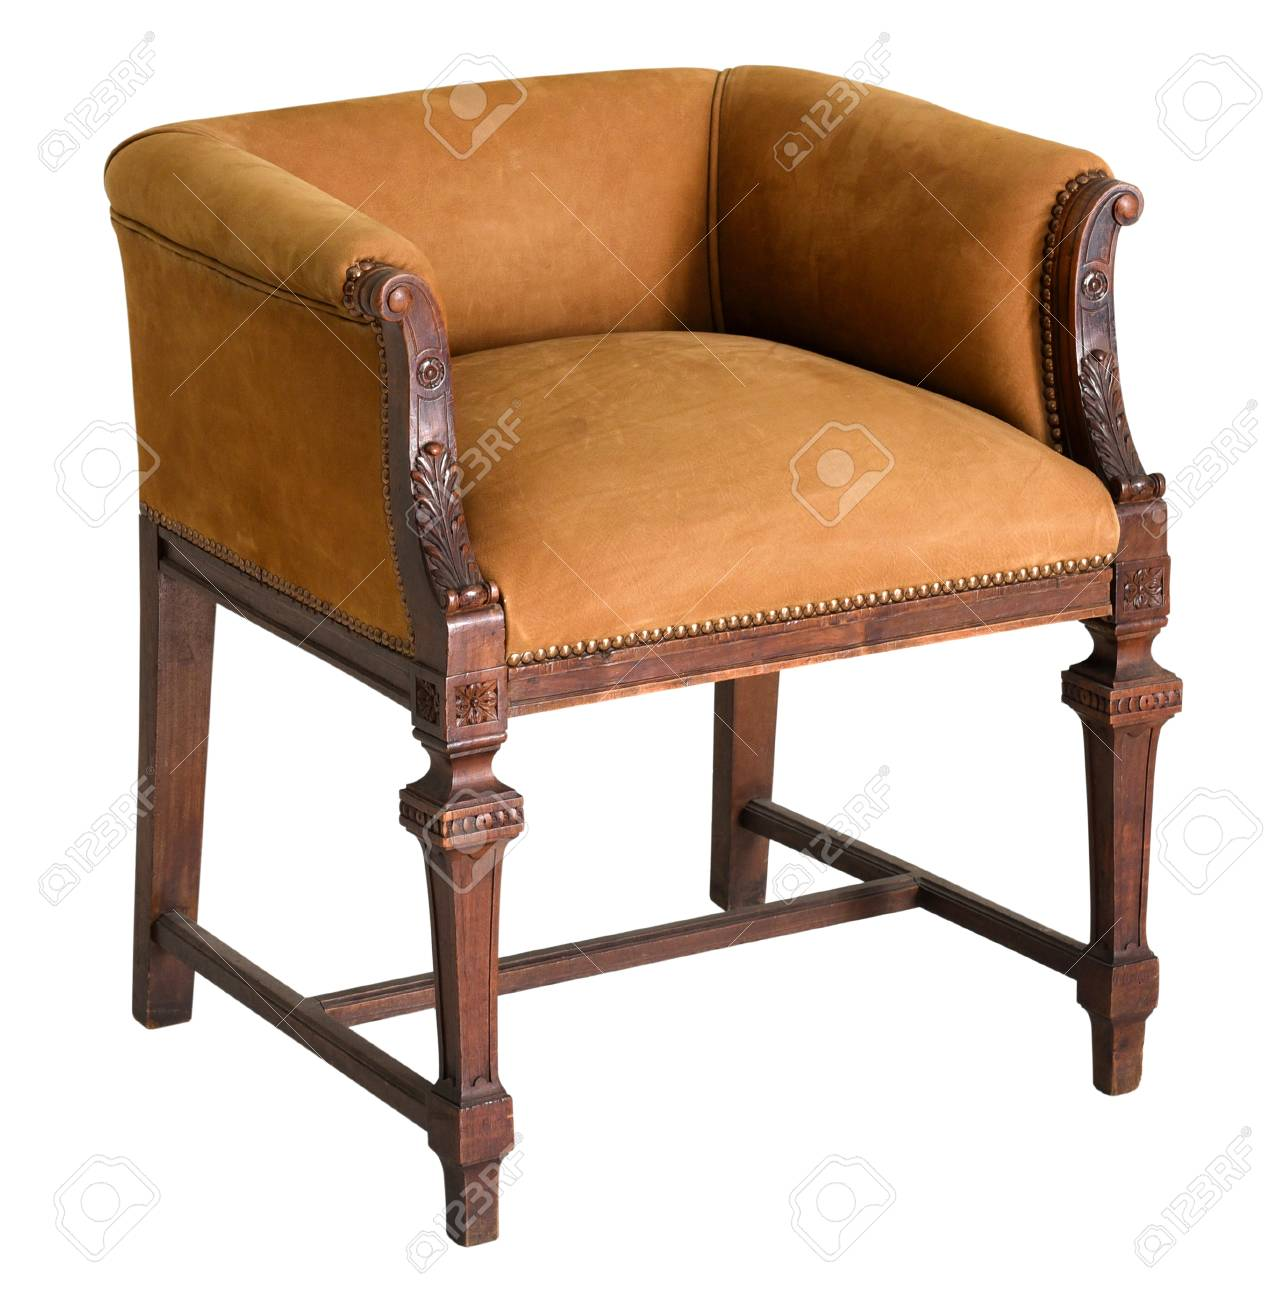 Merveilleux Stock Photo   Vintage Wooden Chair With Brown Velvet Seat And Short Back On  High Lacquered Legs Isolated On White Background